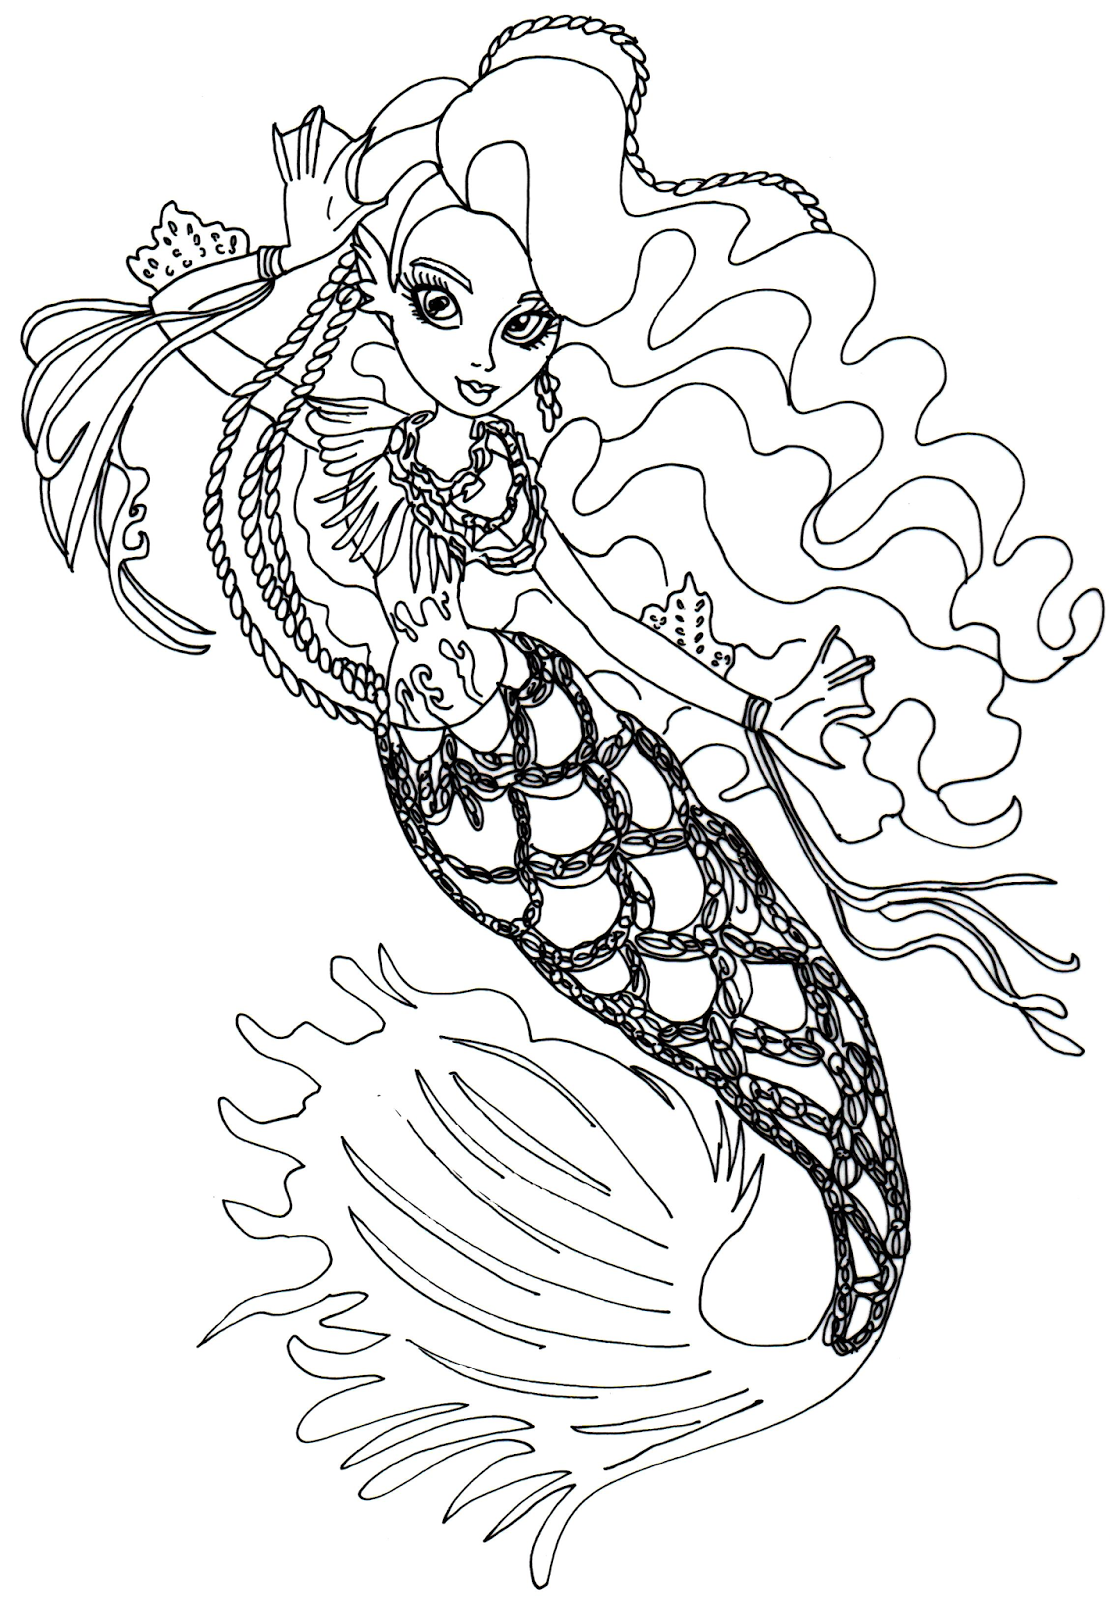 kids coloring pages monster-high,printable,coloring pages